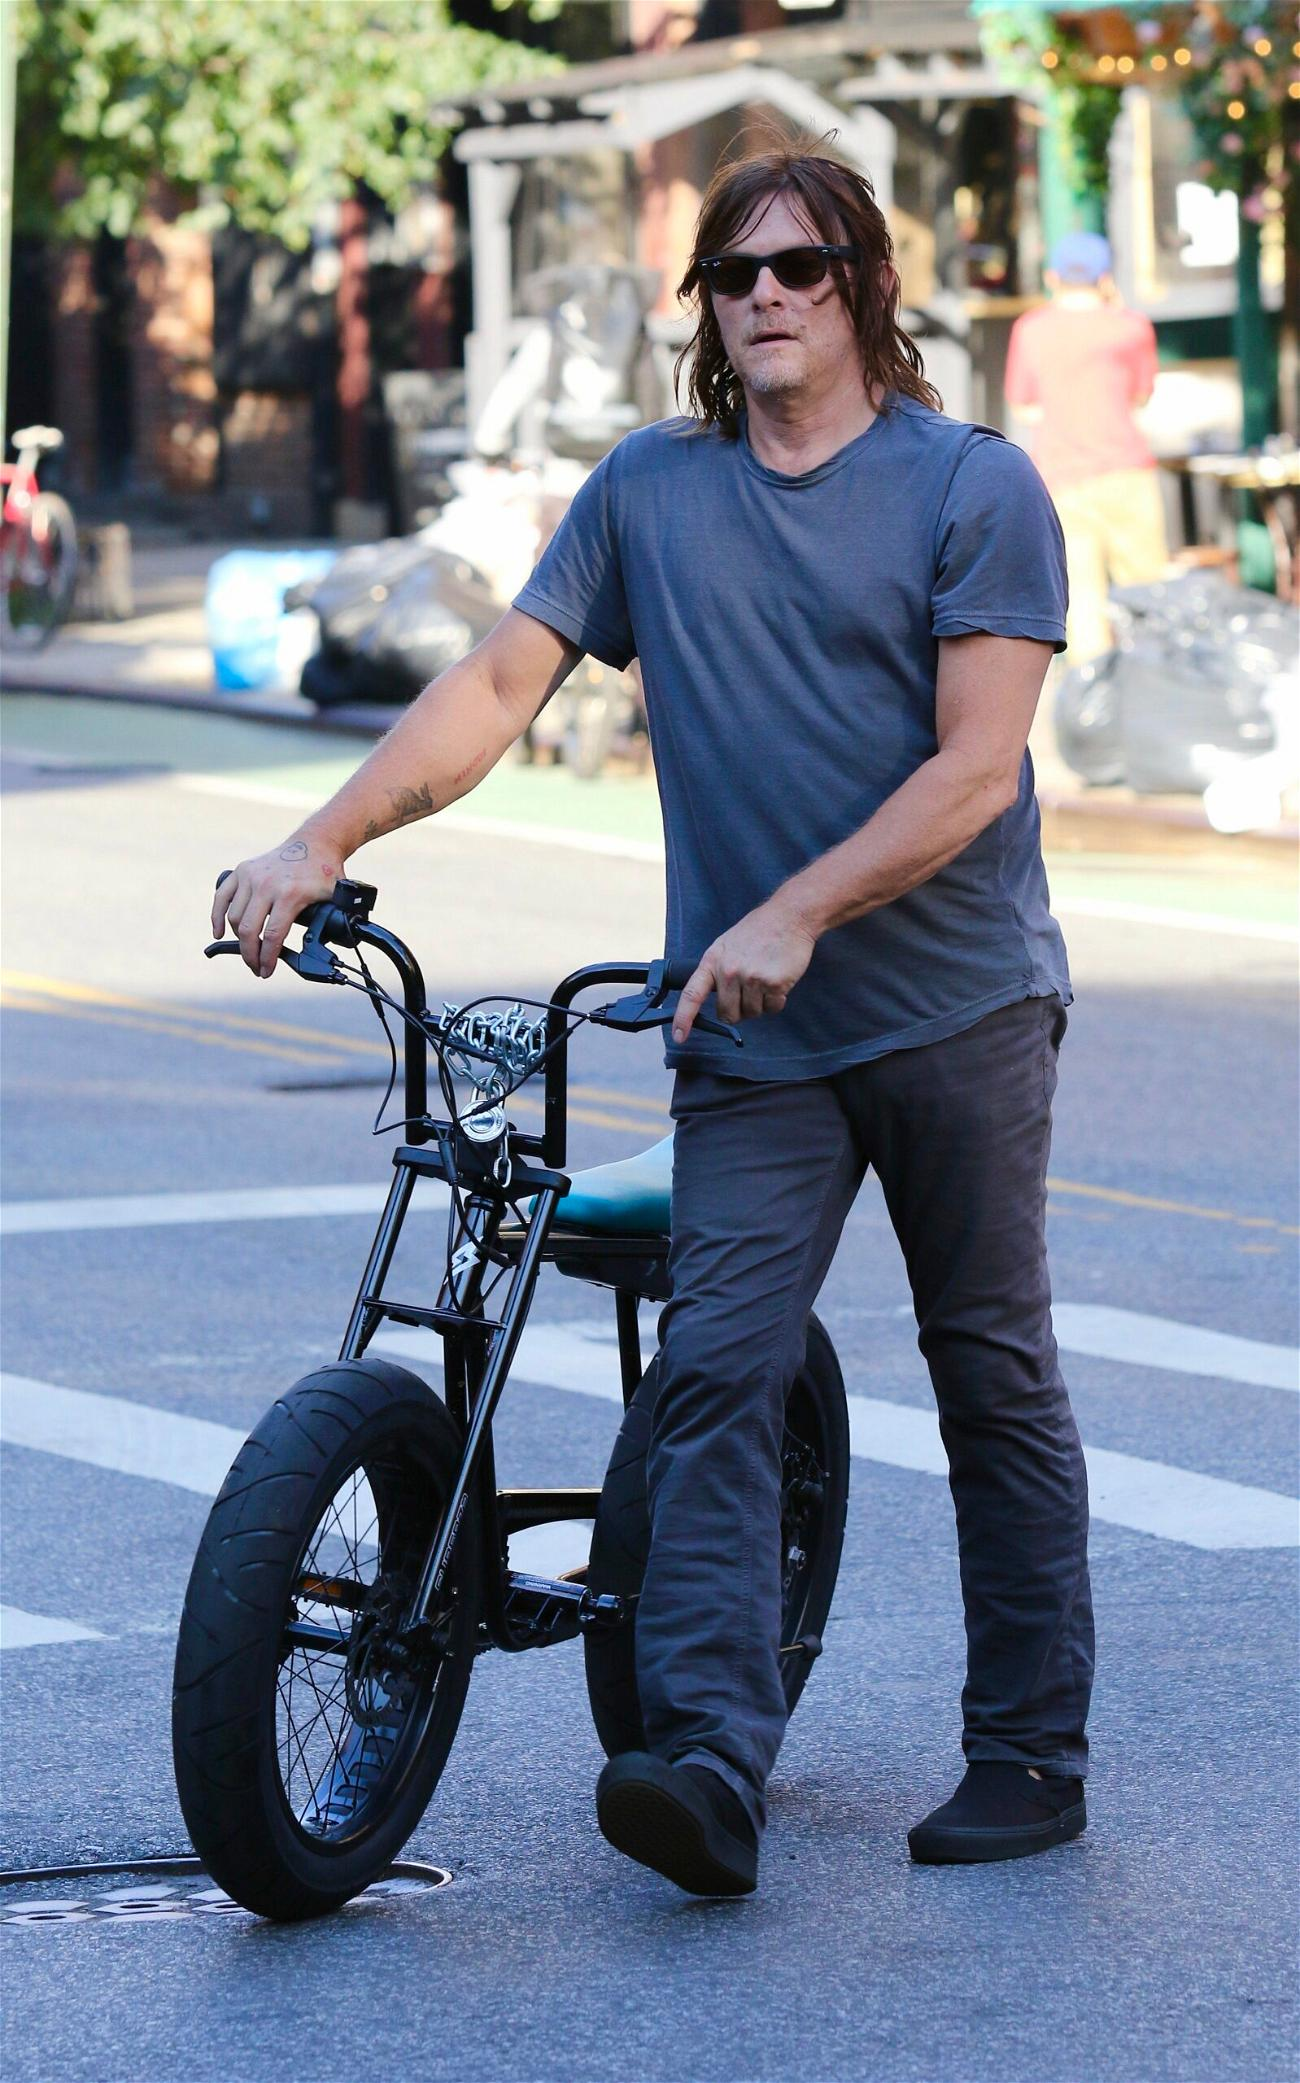 Norman Reedus walks home after a bike ride in NYC